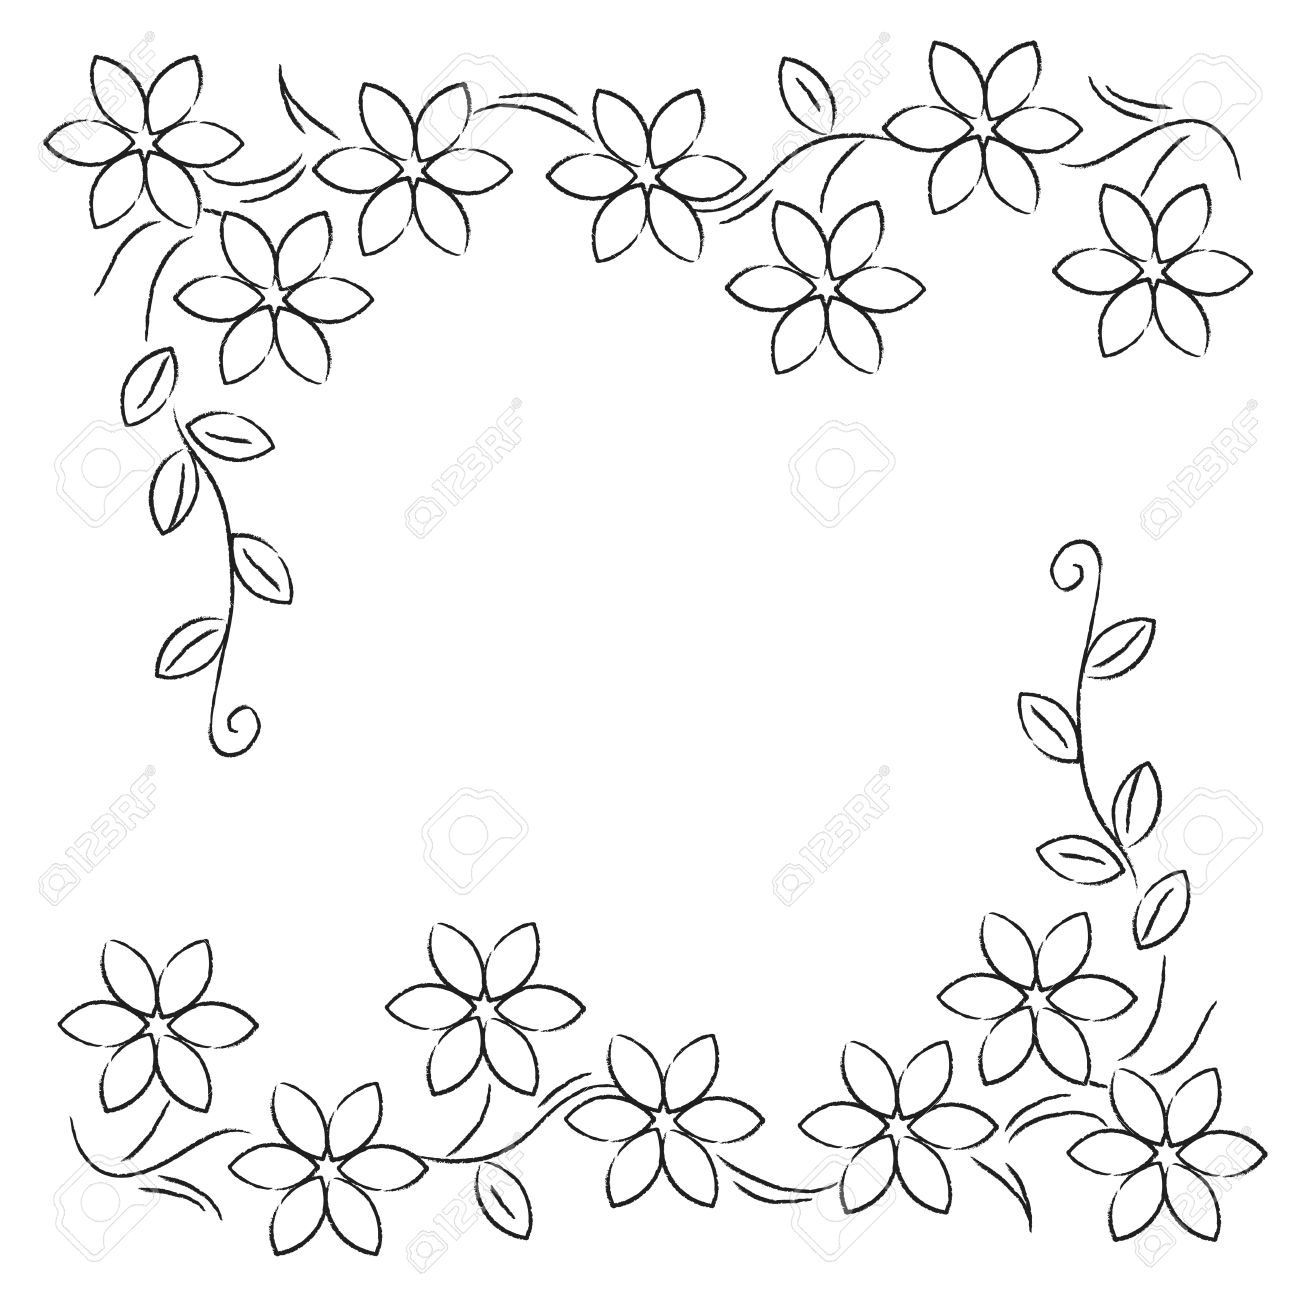 Flower Frame Line Drawing : Flower border drawing at getdrawings free for